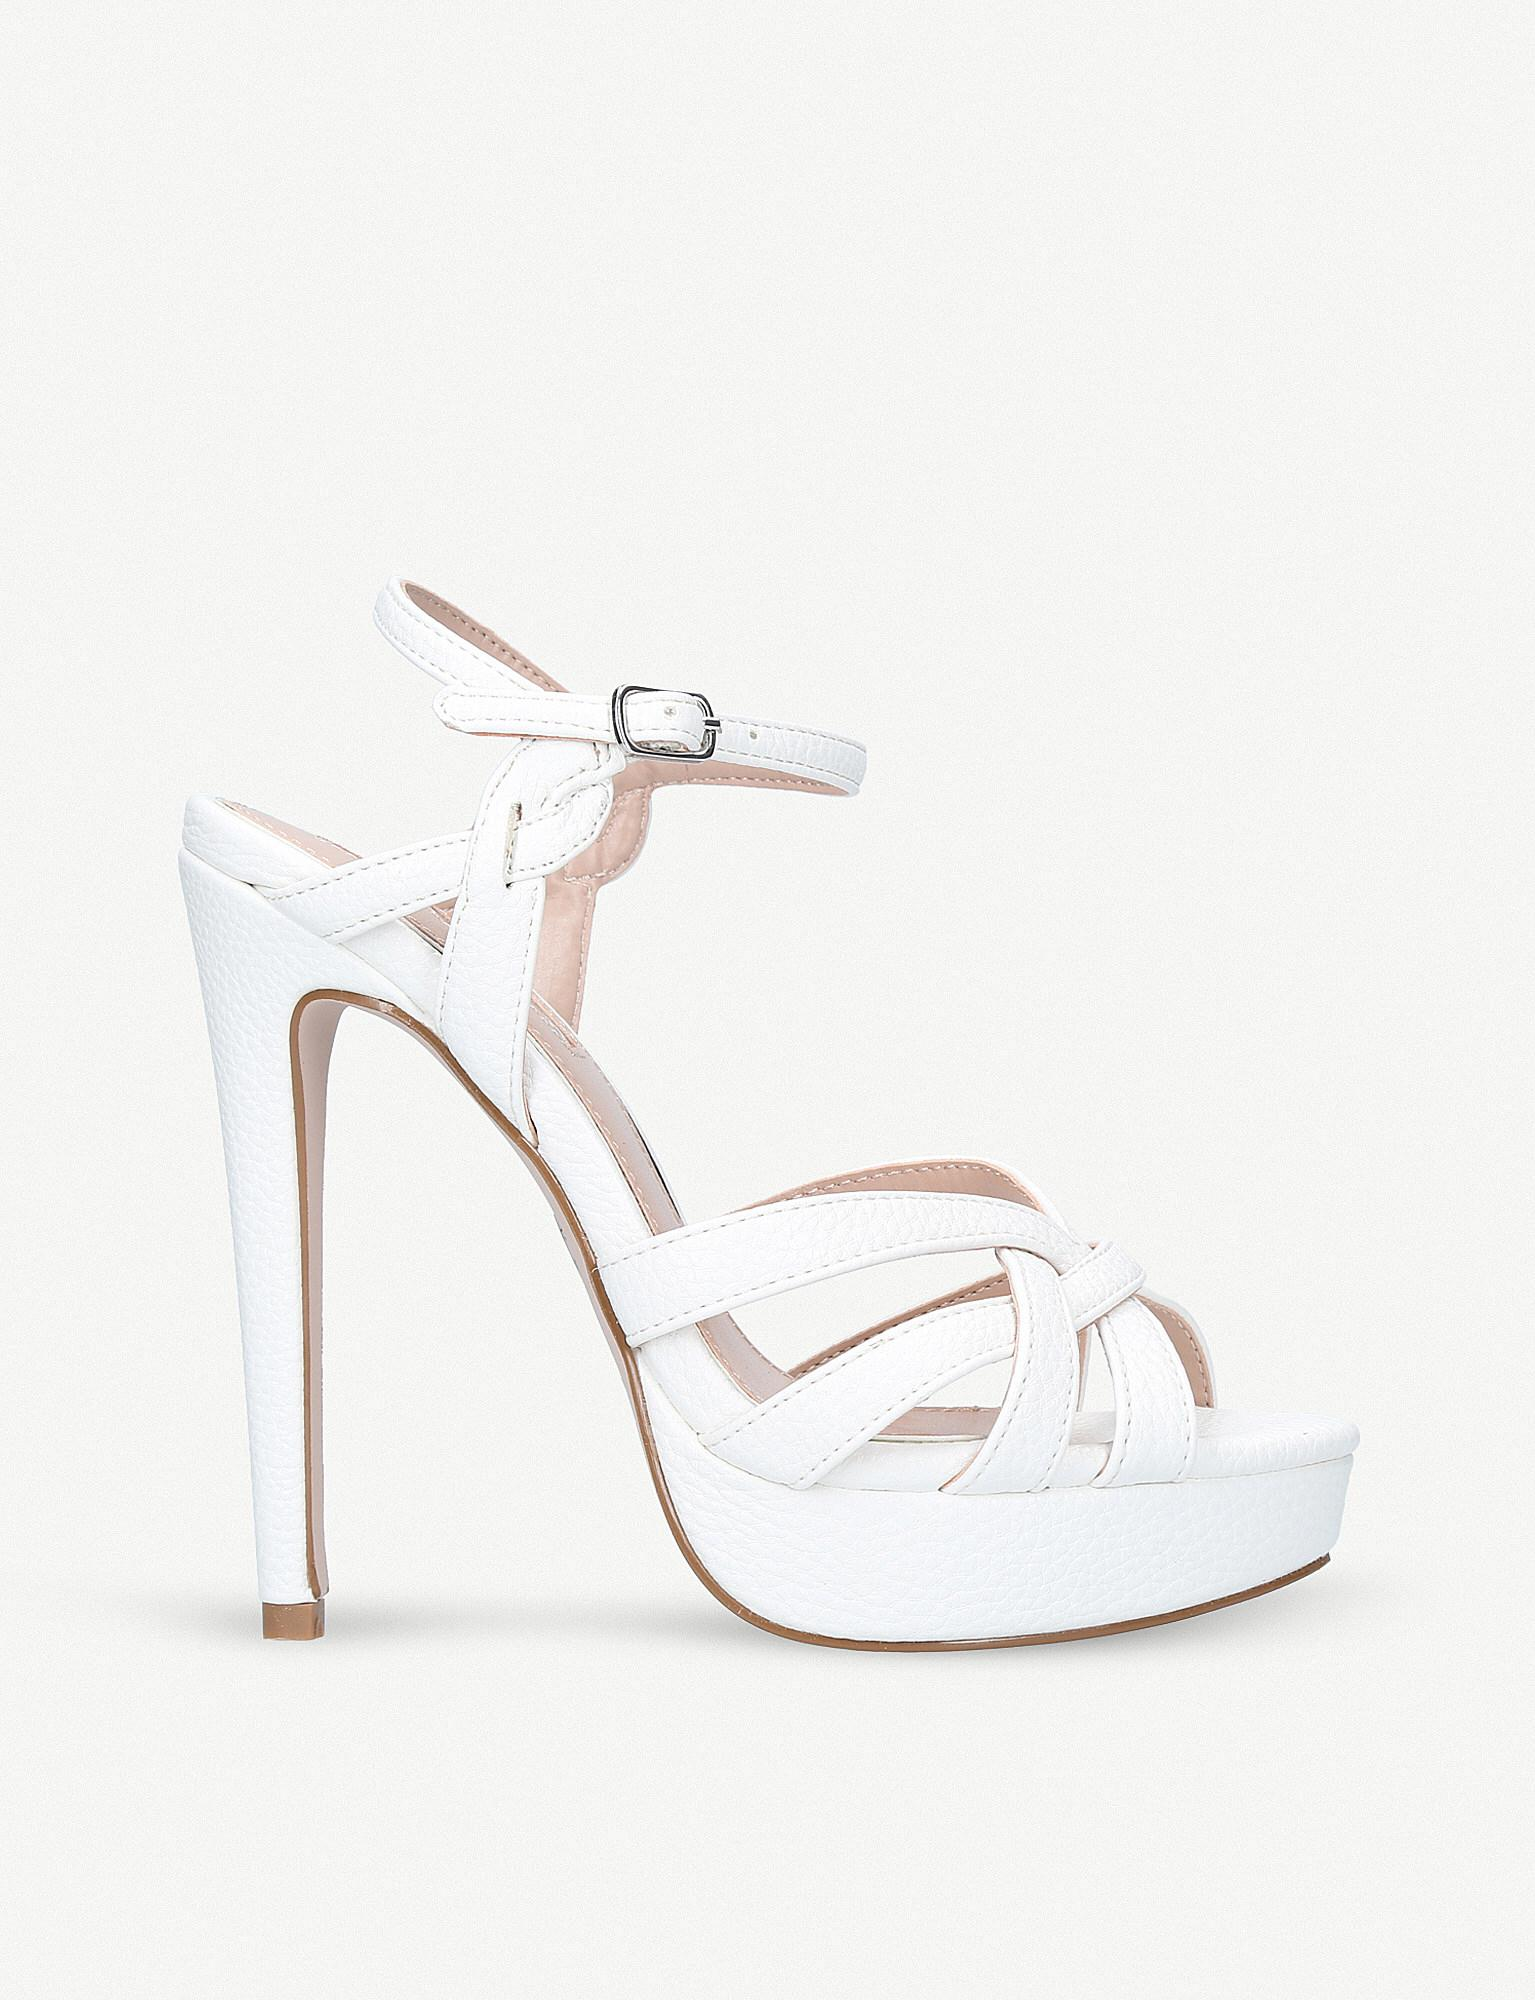 100% guaranteed cheap price Black 'Samia' high heel sandals clearance latest collections cheap popular big discount online elTevjRVz